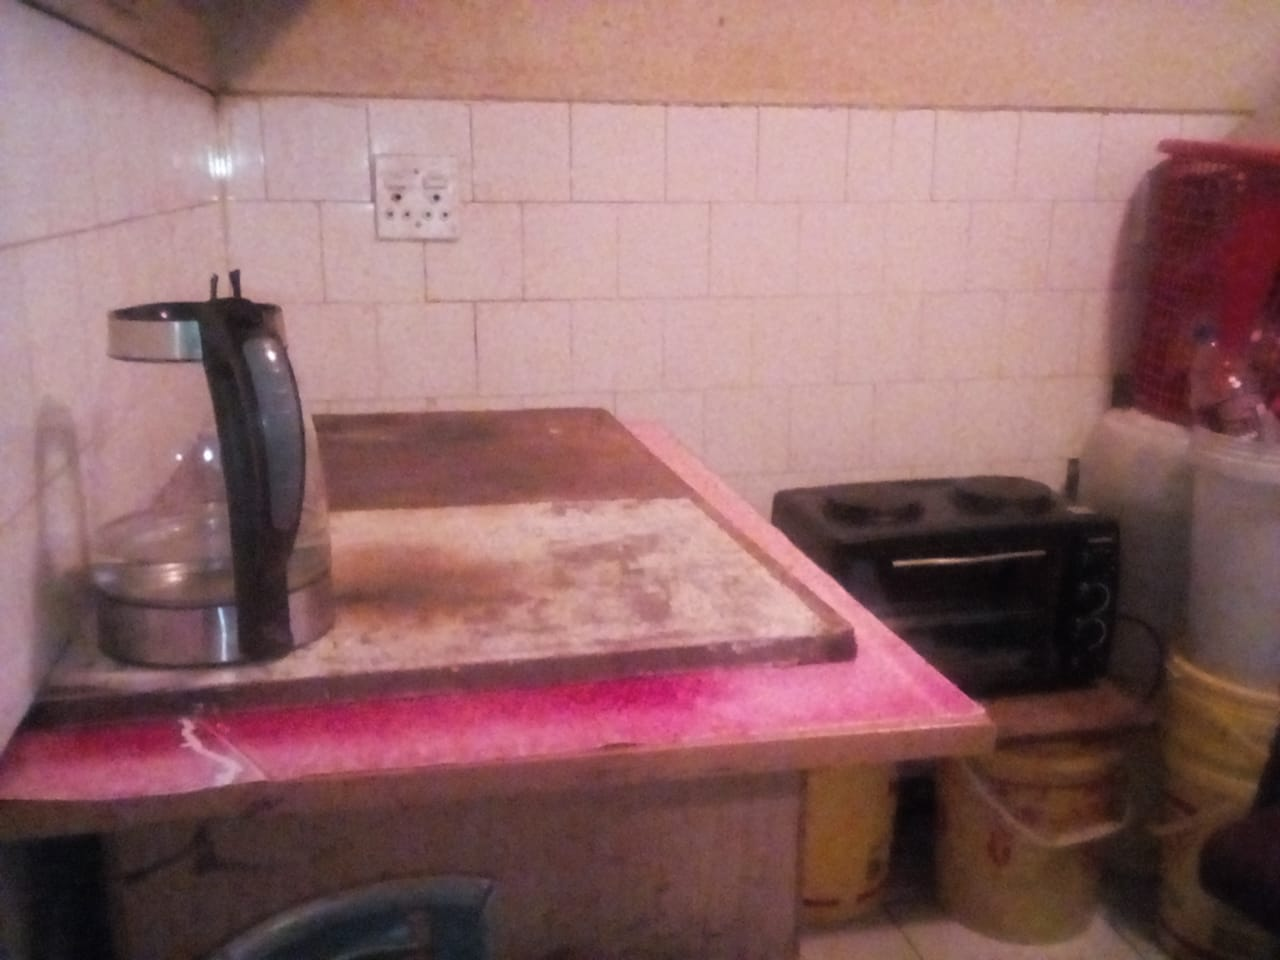 Apartment in Berea & Surrounds - WhatsApp Image 2021-07-21 at 5.38.59 PM (2).jpeg